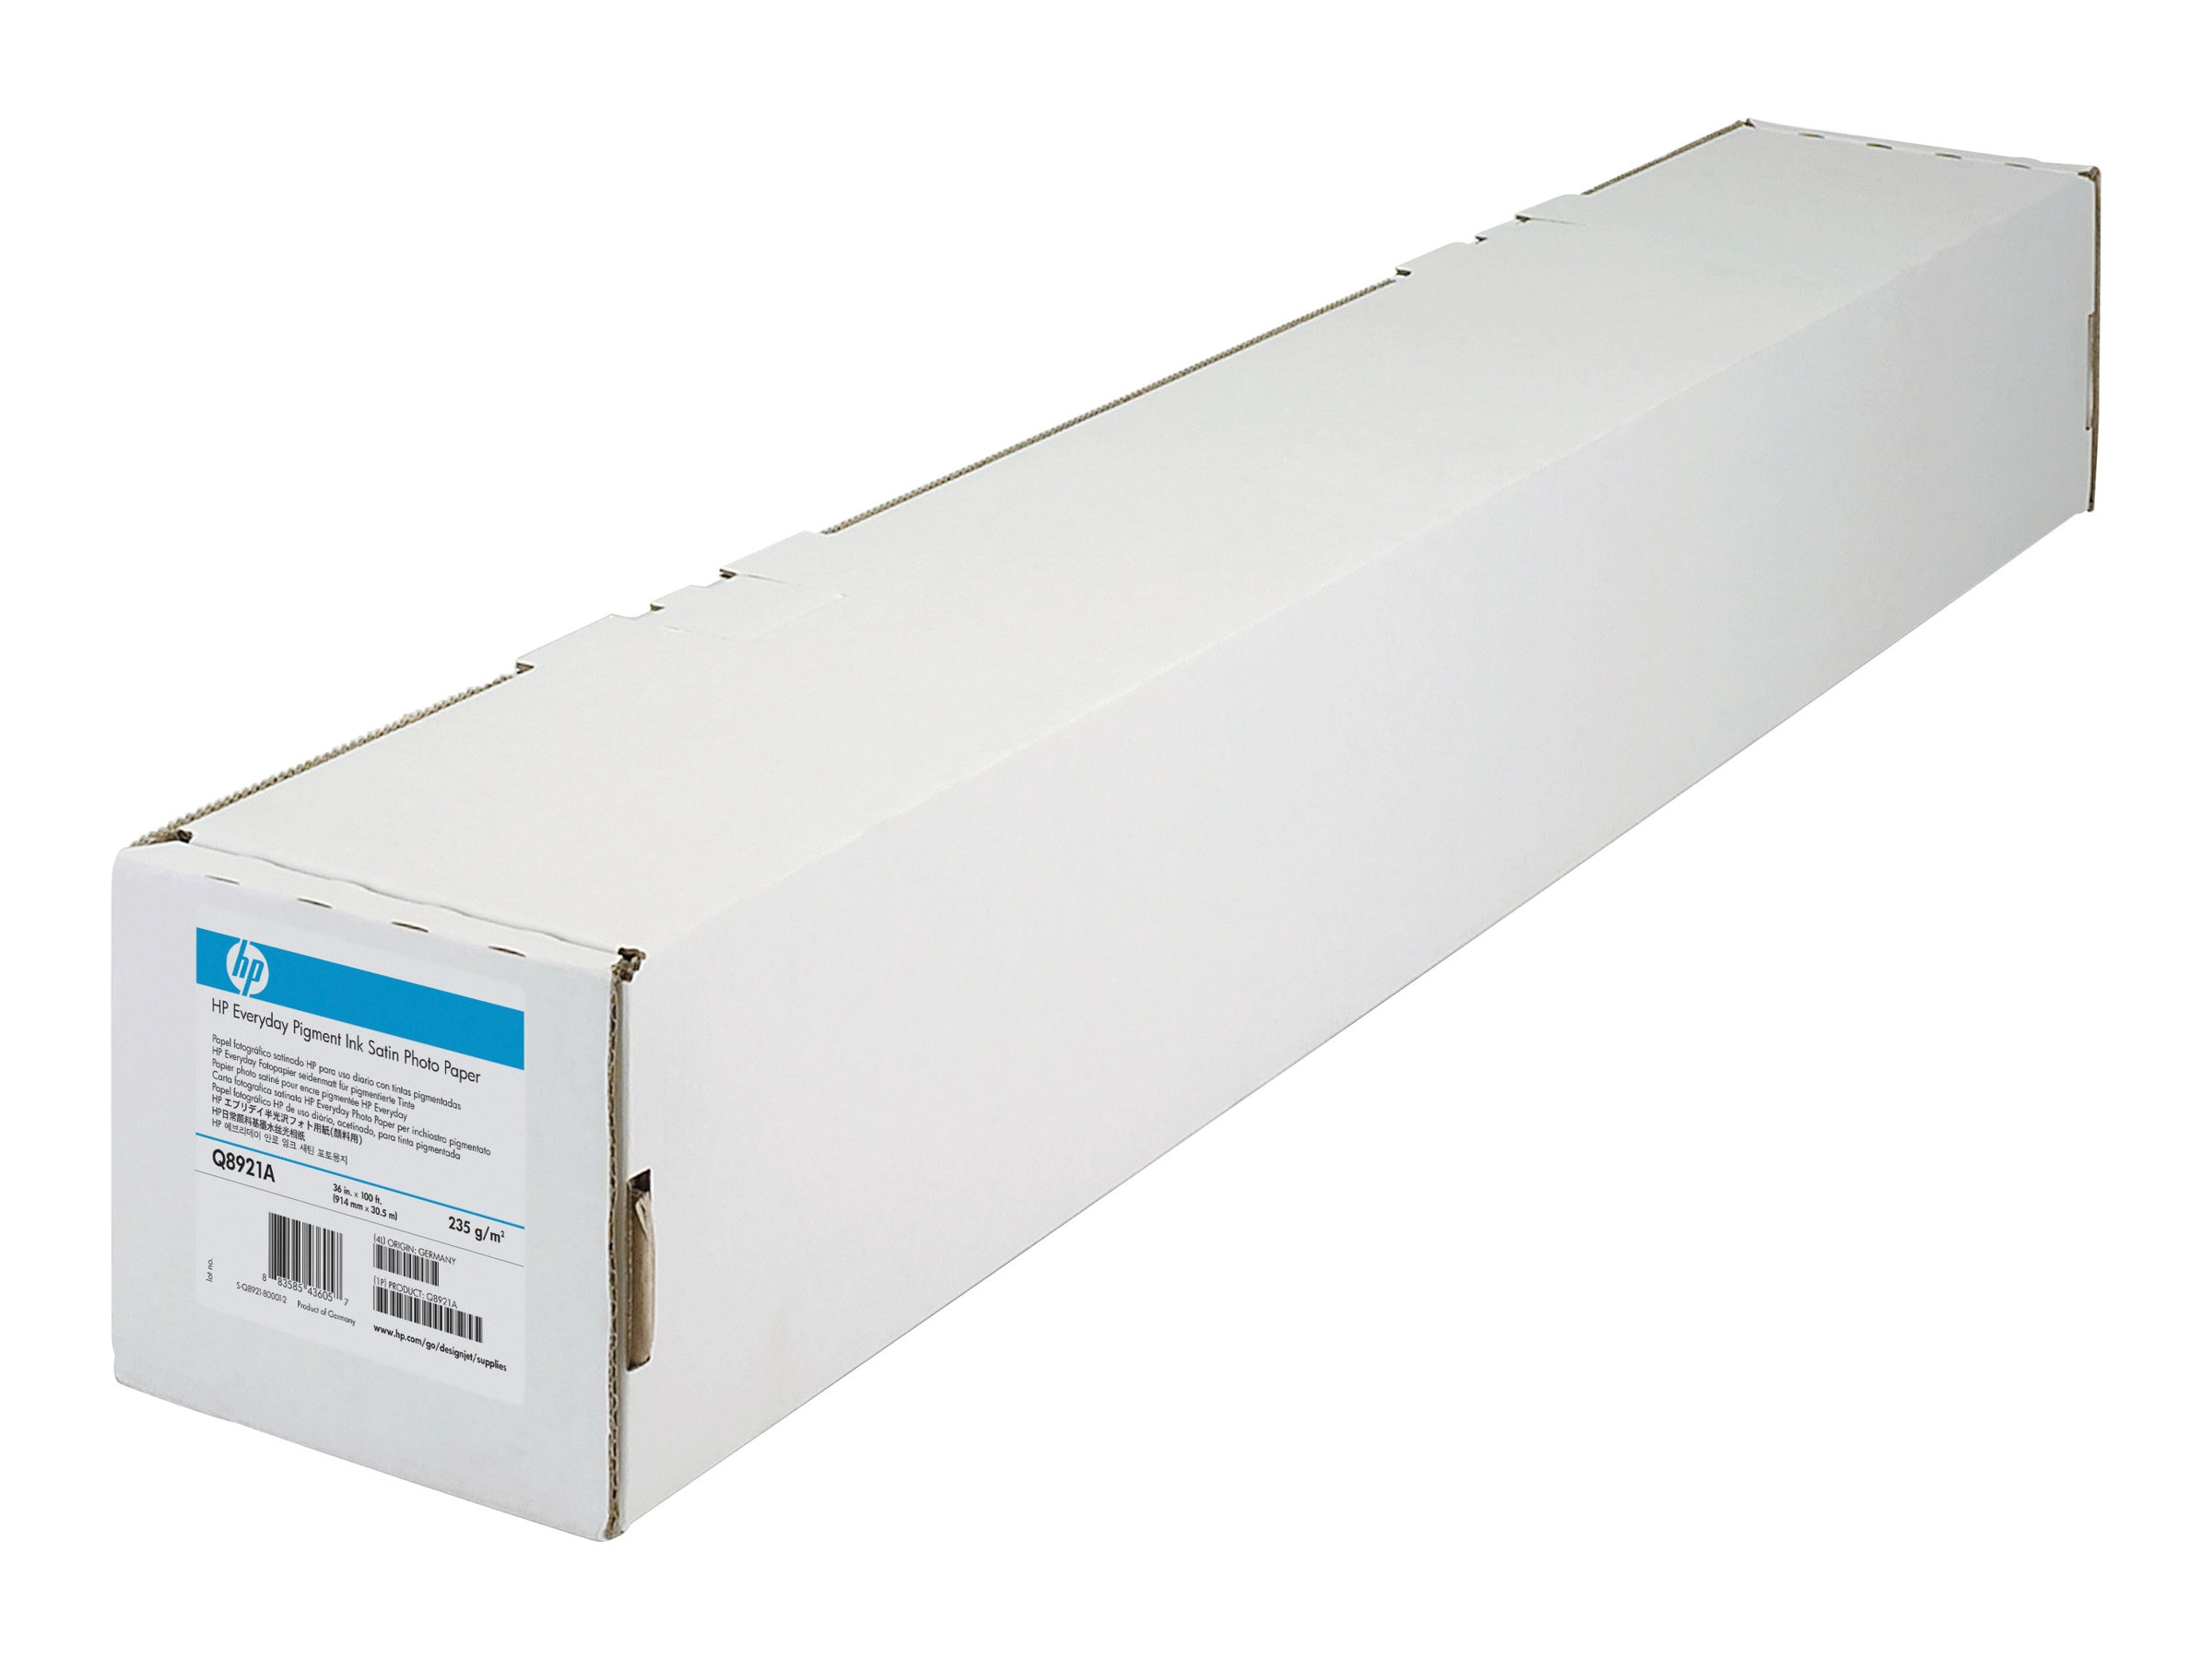 HP 36 x 100' Universal Photo Semi-Gloss Paper